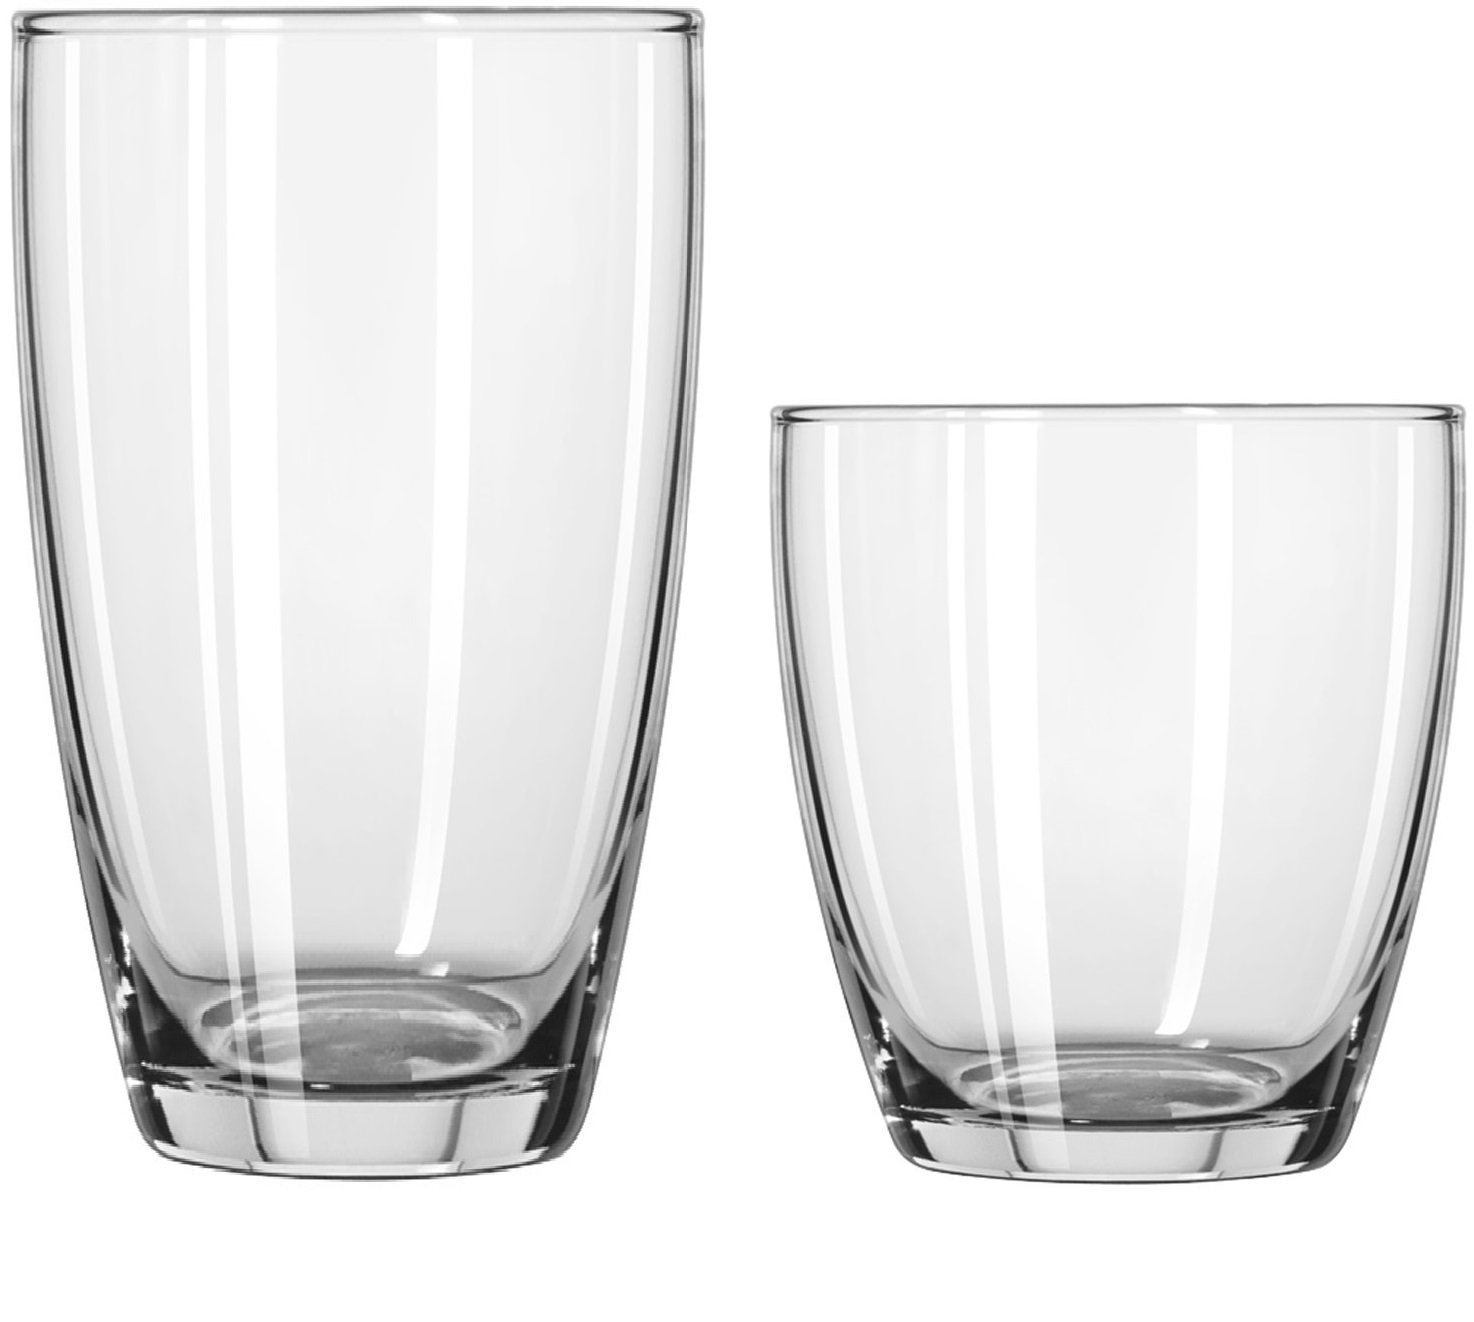 Circleware 44539 Smooth Huge Set of 12, 6-16oz Drinking Glasses & 6-13oz Whiskey Glass, Kitchen Glassware for Water, Beer, Wine Liquor Beverage, 16oz&13oz, Smooth 12pc